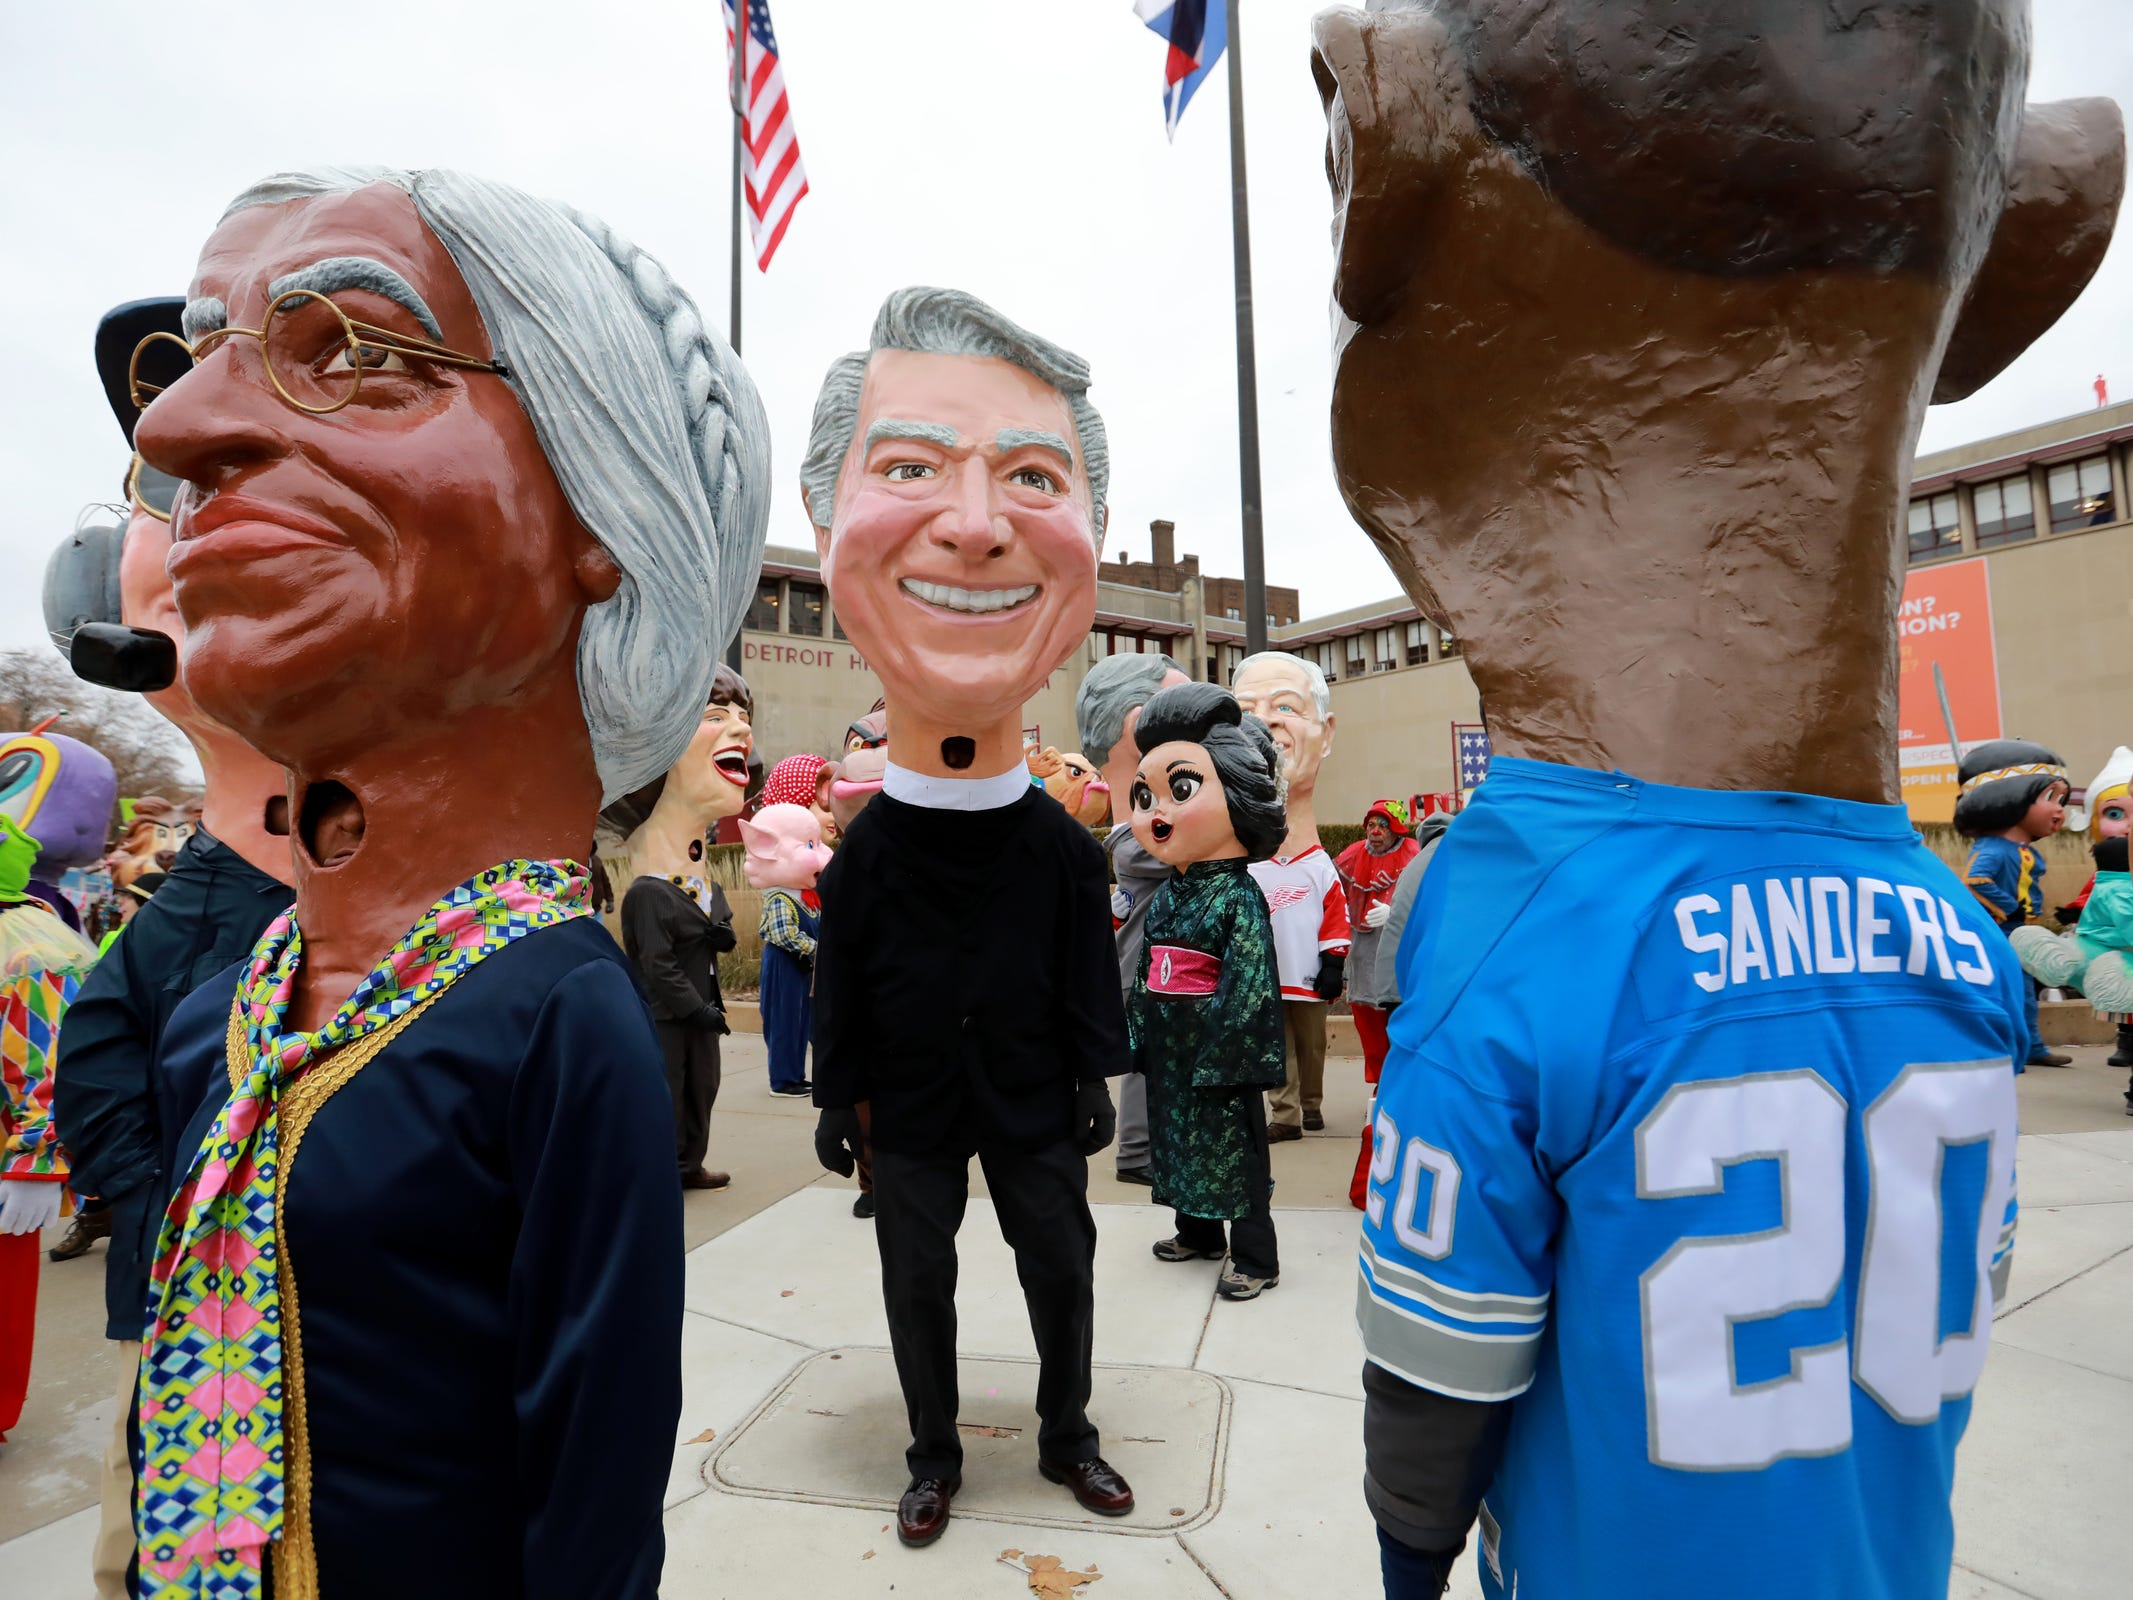 Big Heads made out of papier-mache stand outside of the Detroit Historical Museum waiting to join America's Thanksgiving Parade in Detroit on Thursday, Nov. 22, 2018.